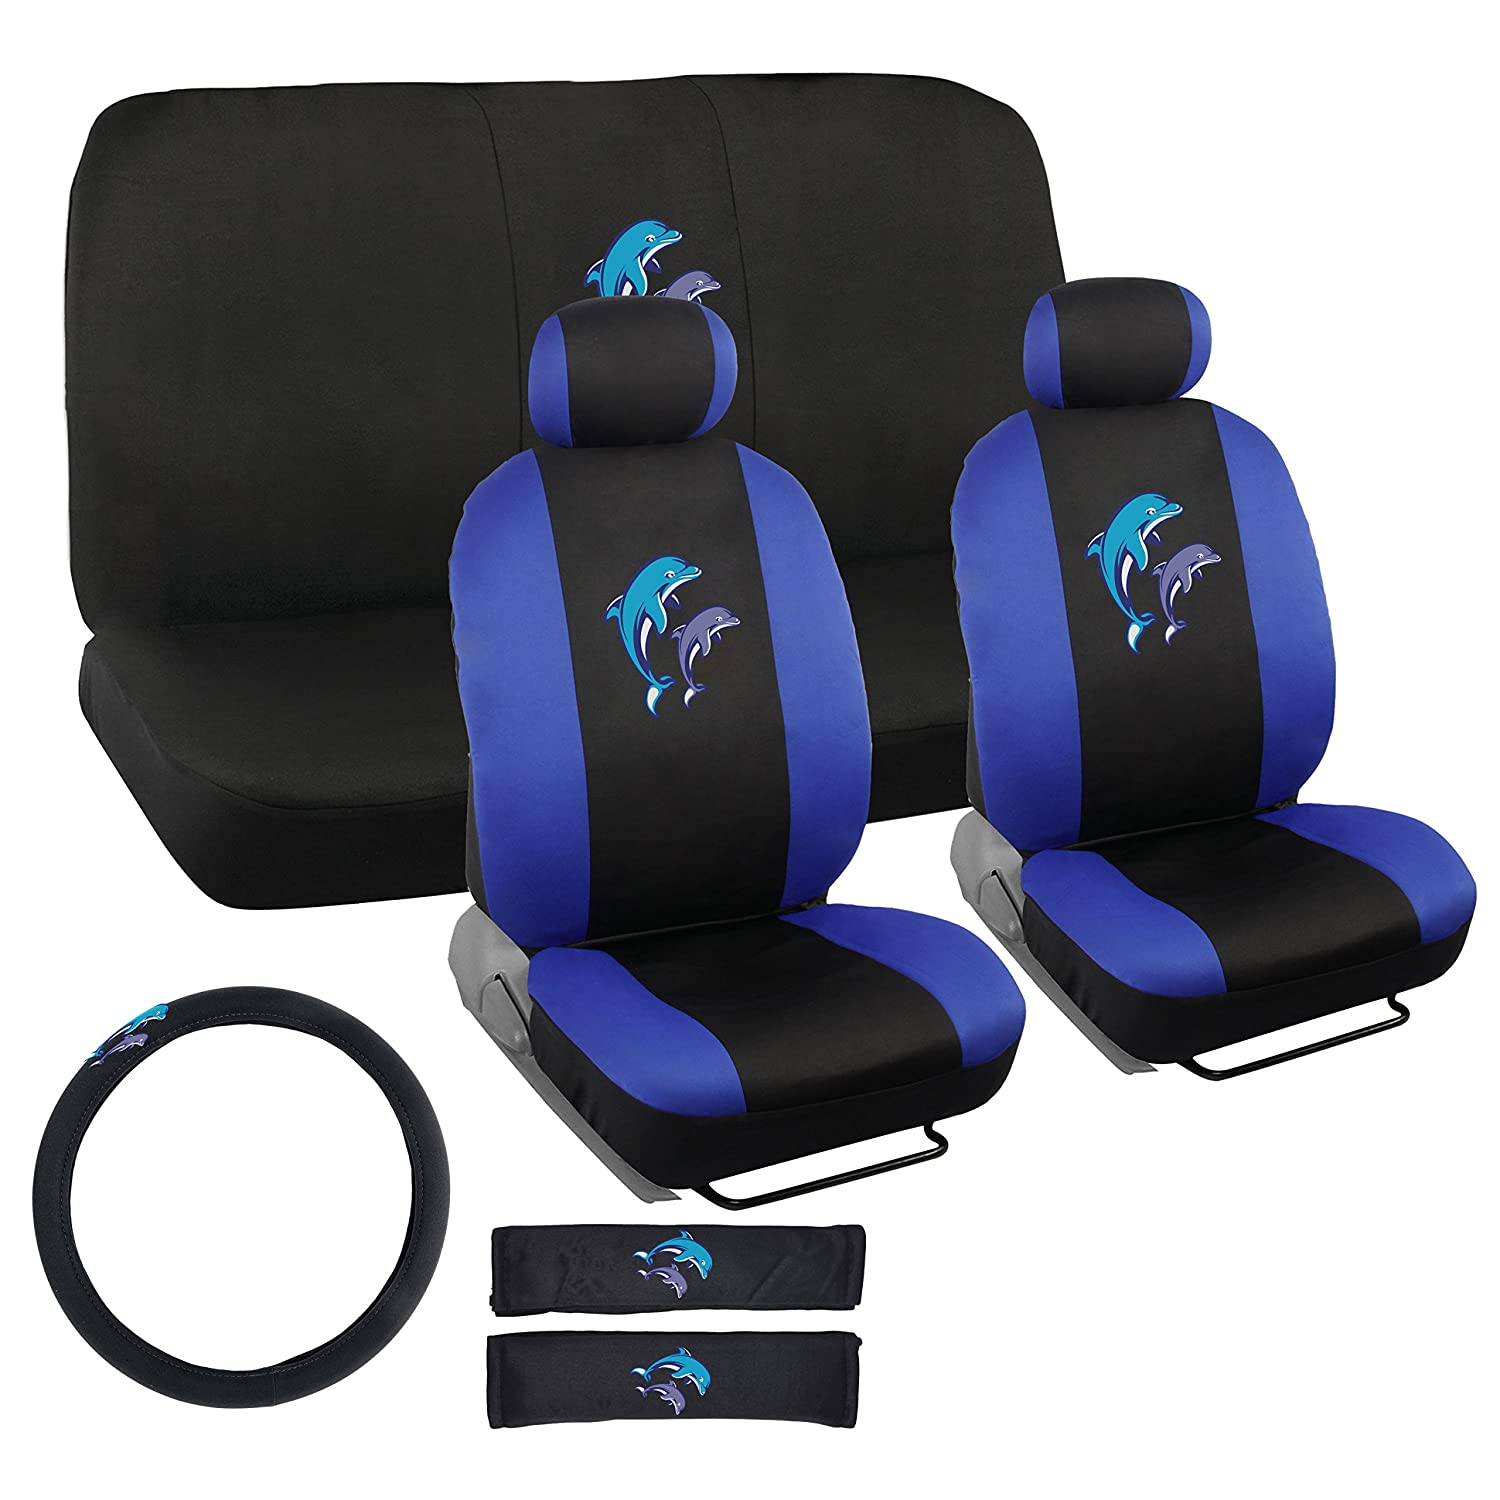 Amazon.com: BDK Dolphins Design Seat Covers for Car, SUV - Universal